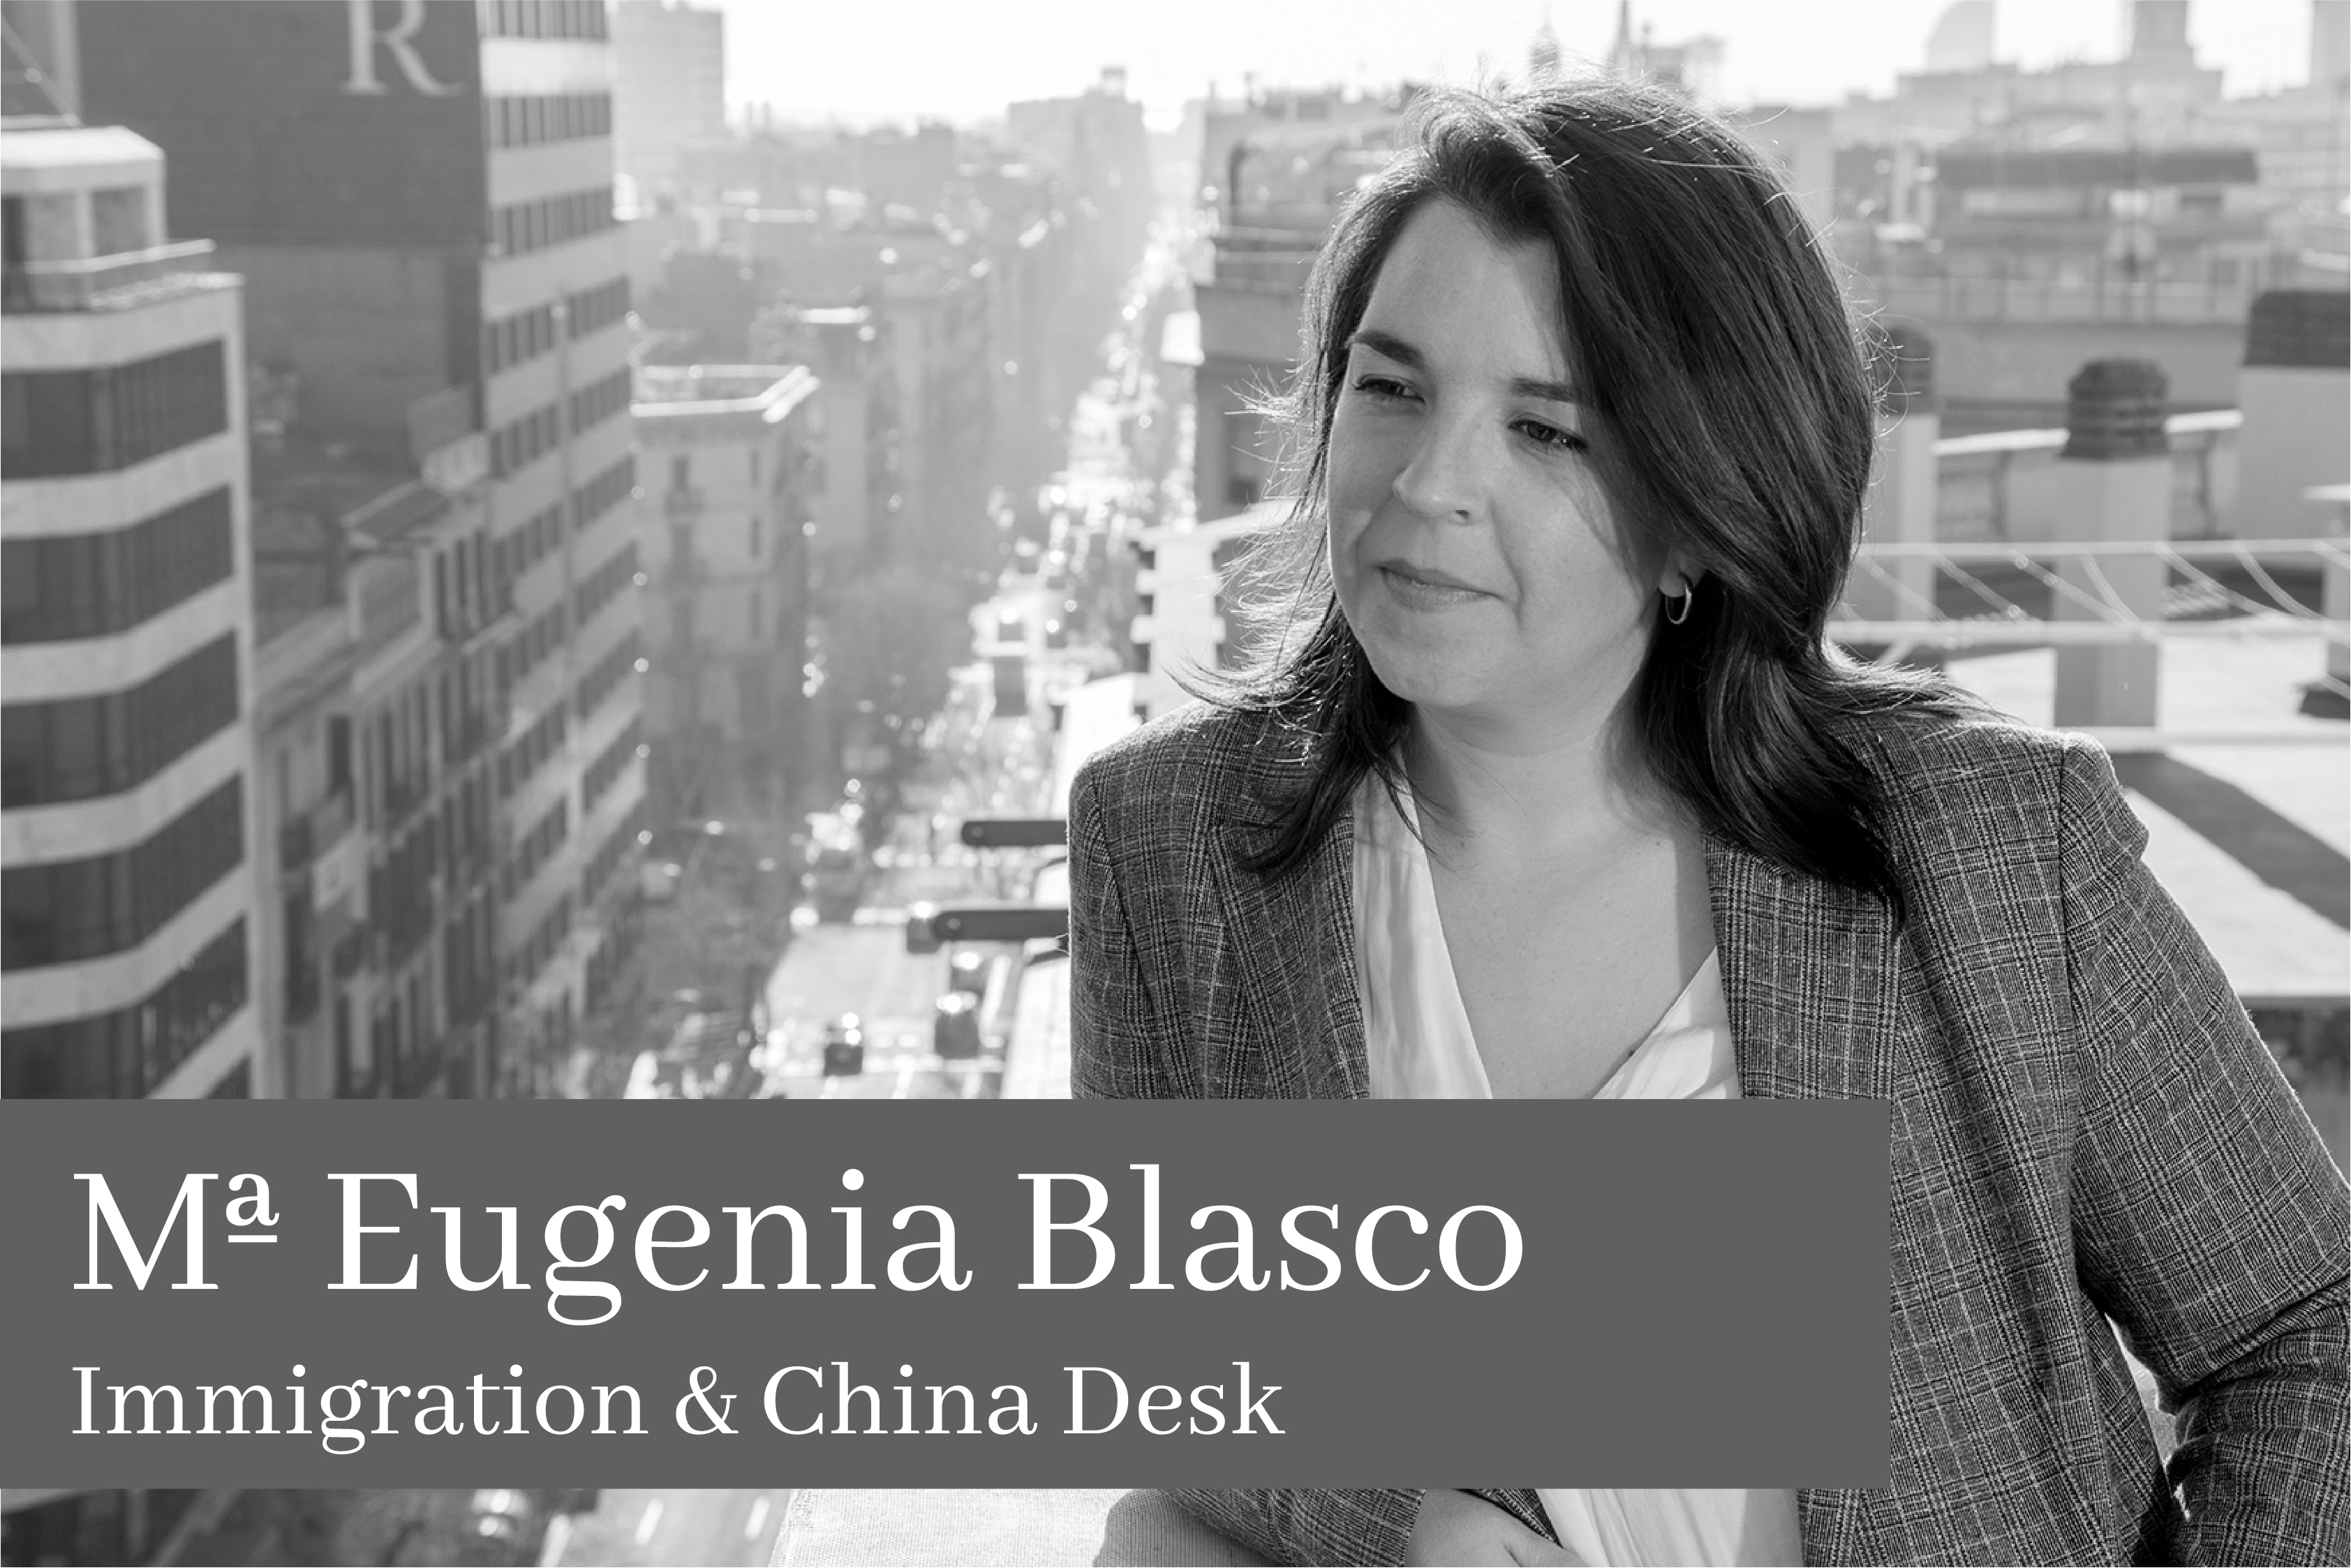 Mª Eugenia Blasco Immigration & China Desk